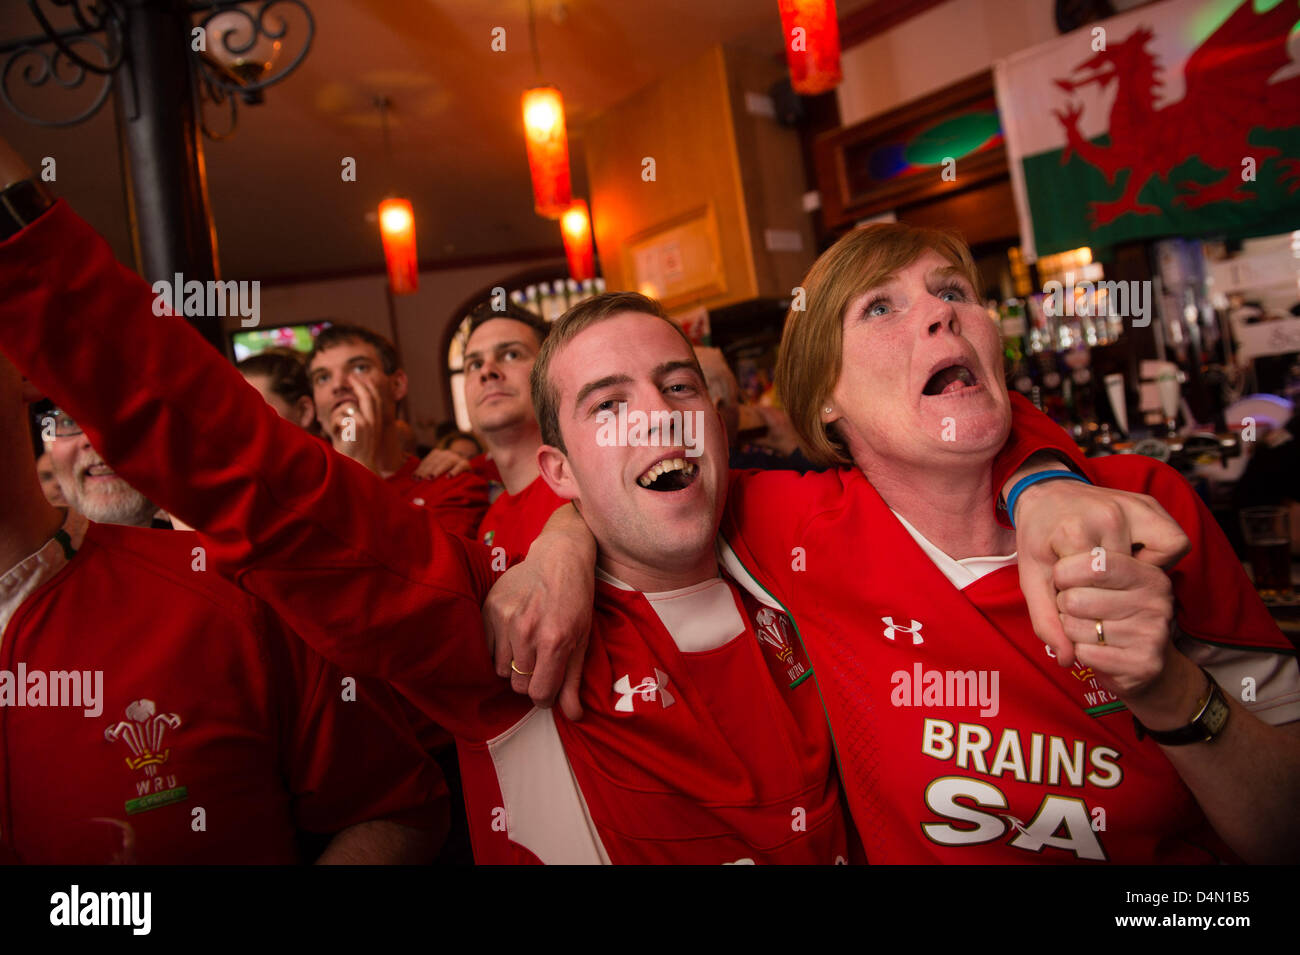 Aberystwyth, Wales, UK. Saturday 16 March 2013.  Scores of Welsh rugby fans crowd in to the Castle Hotel pub in - Stock Image